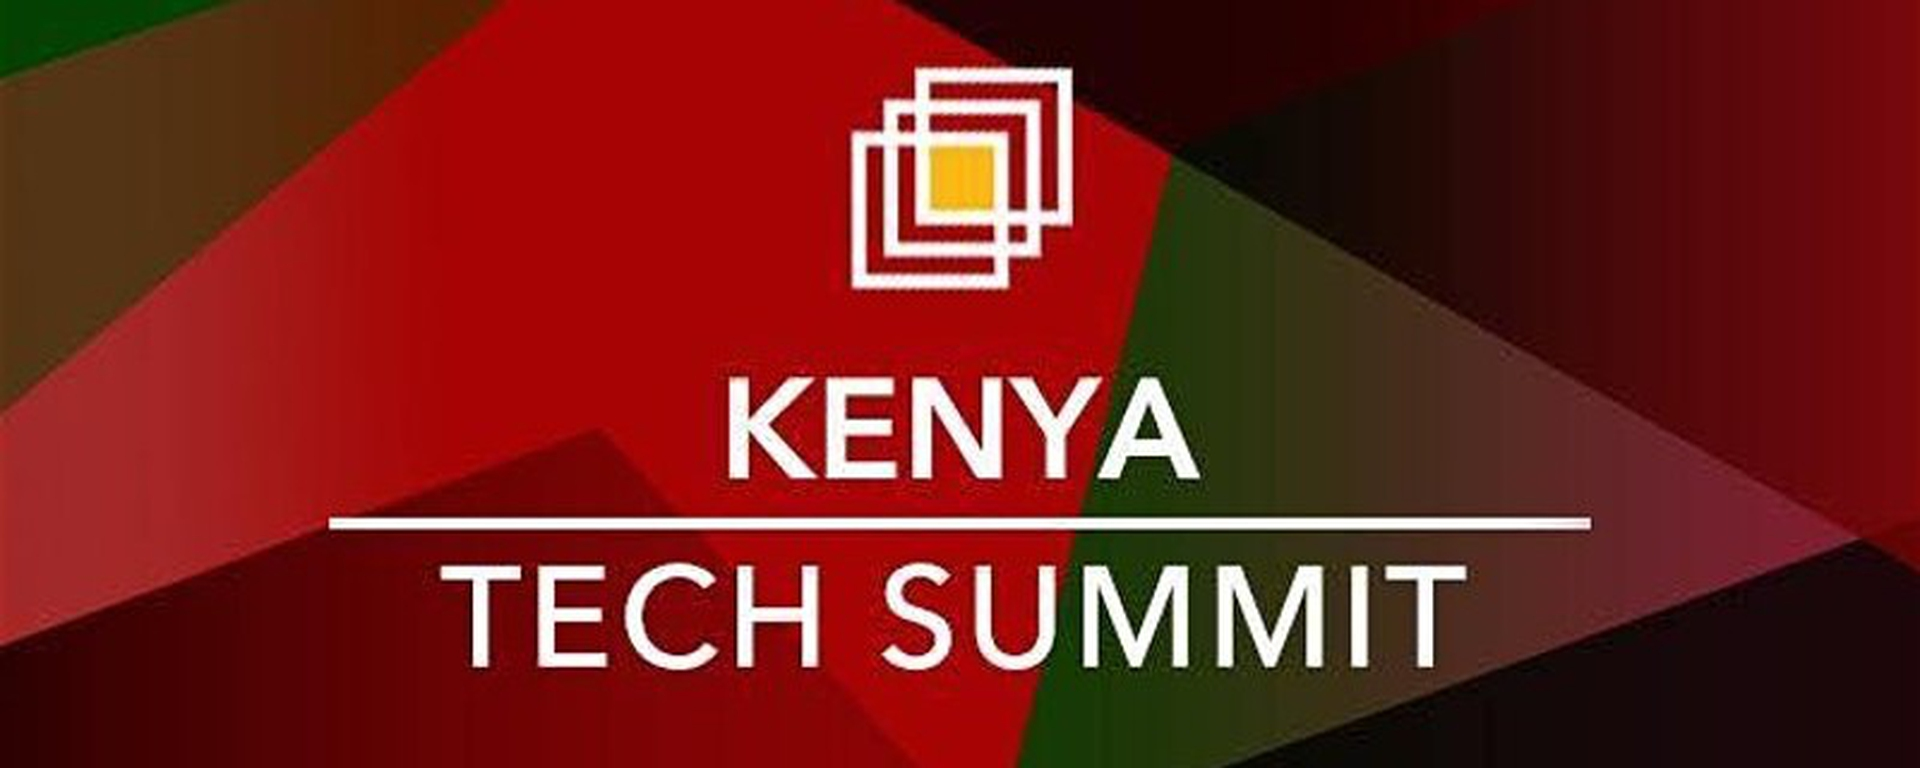 Africa Future Summit - Africa Future Summit (Kenya) 2020 Movemeback African event cover image